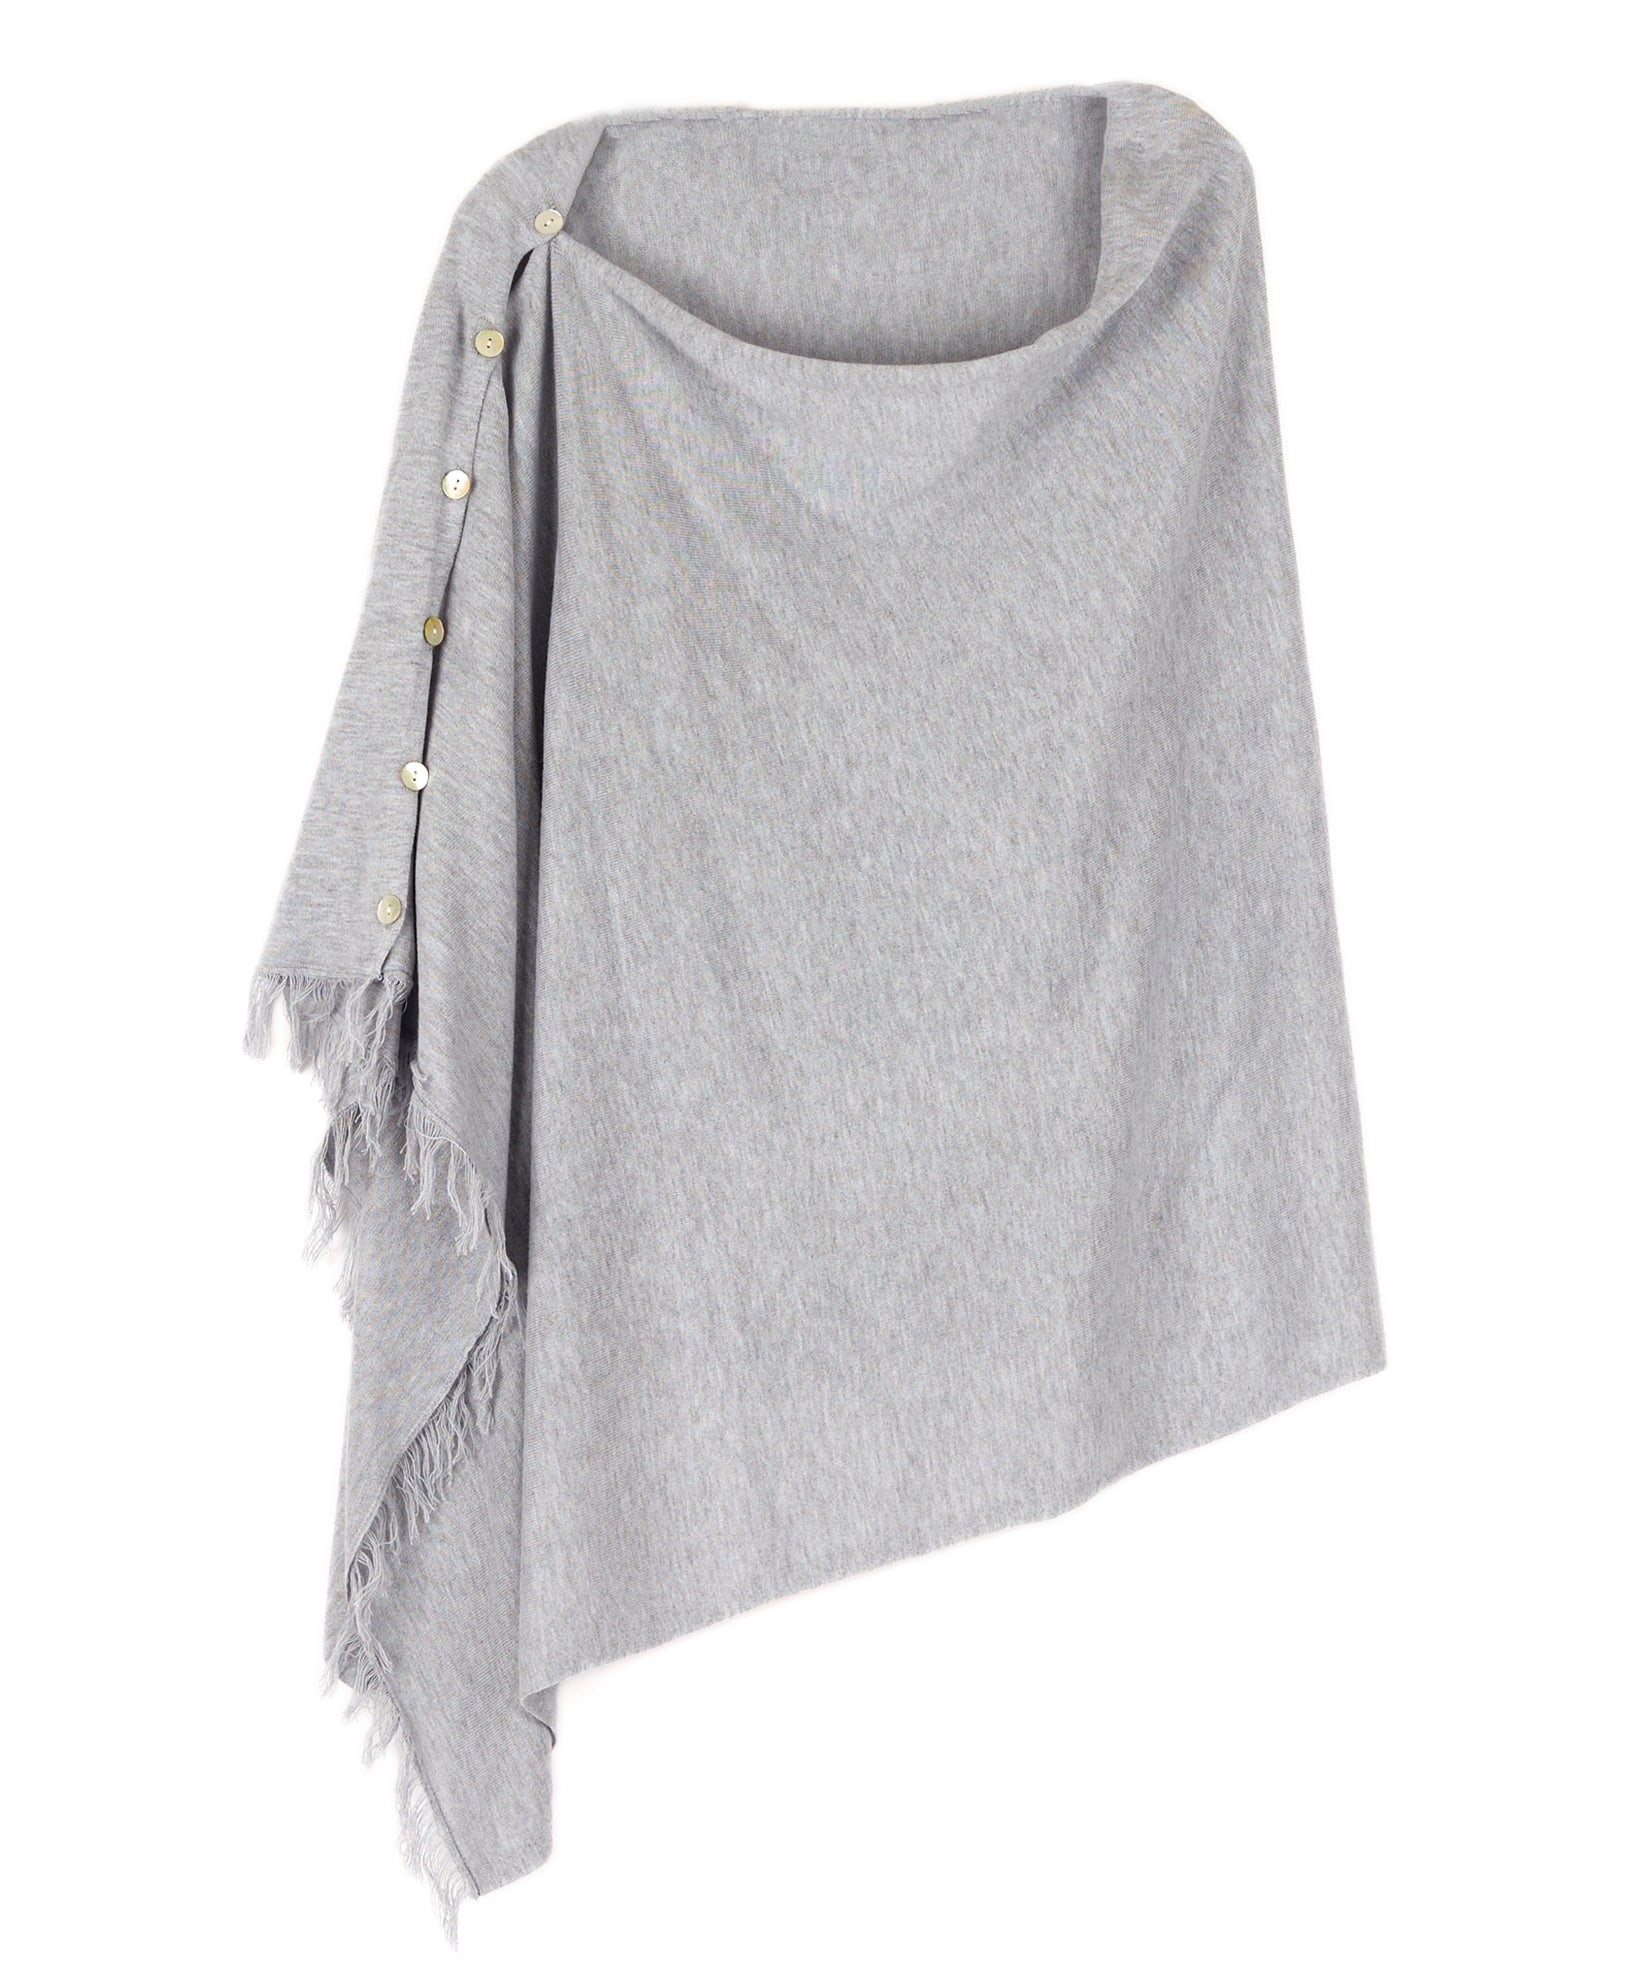 Heather Grey - Convertible Topper